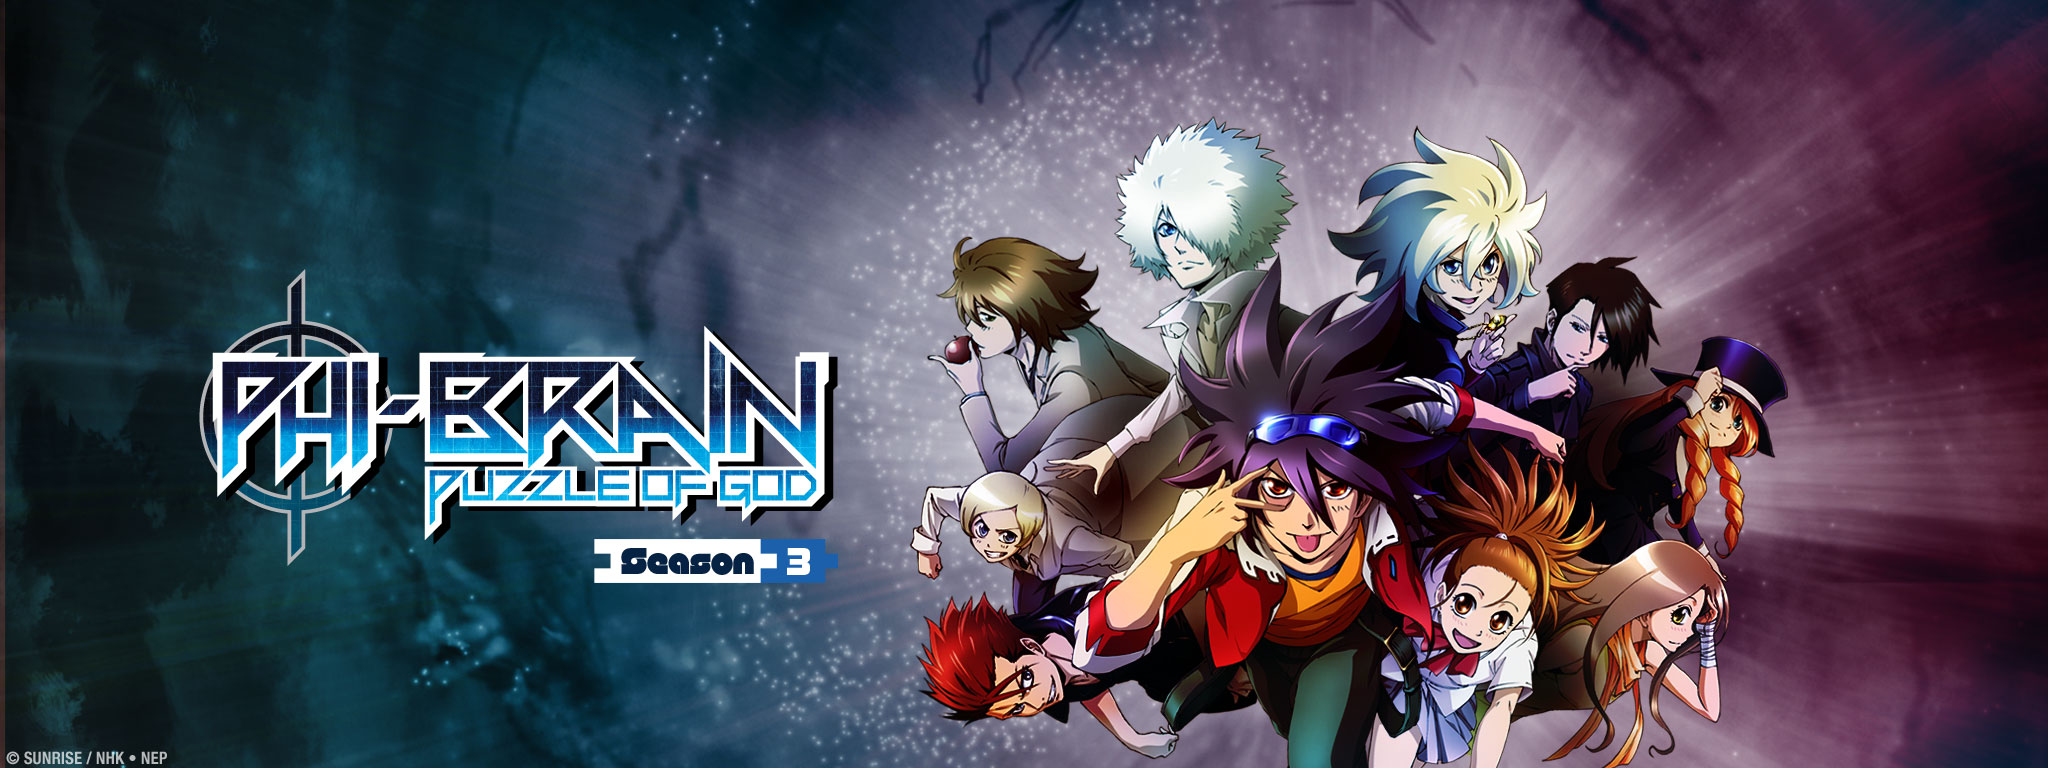 Phi-Brain ~ Puzzle of God Season 3